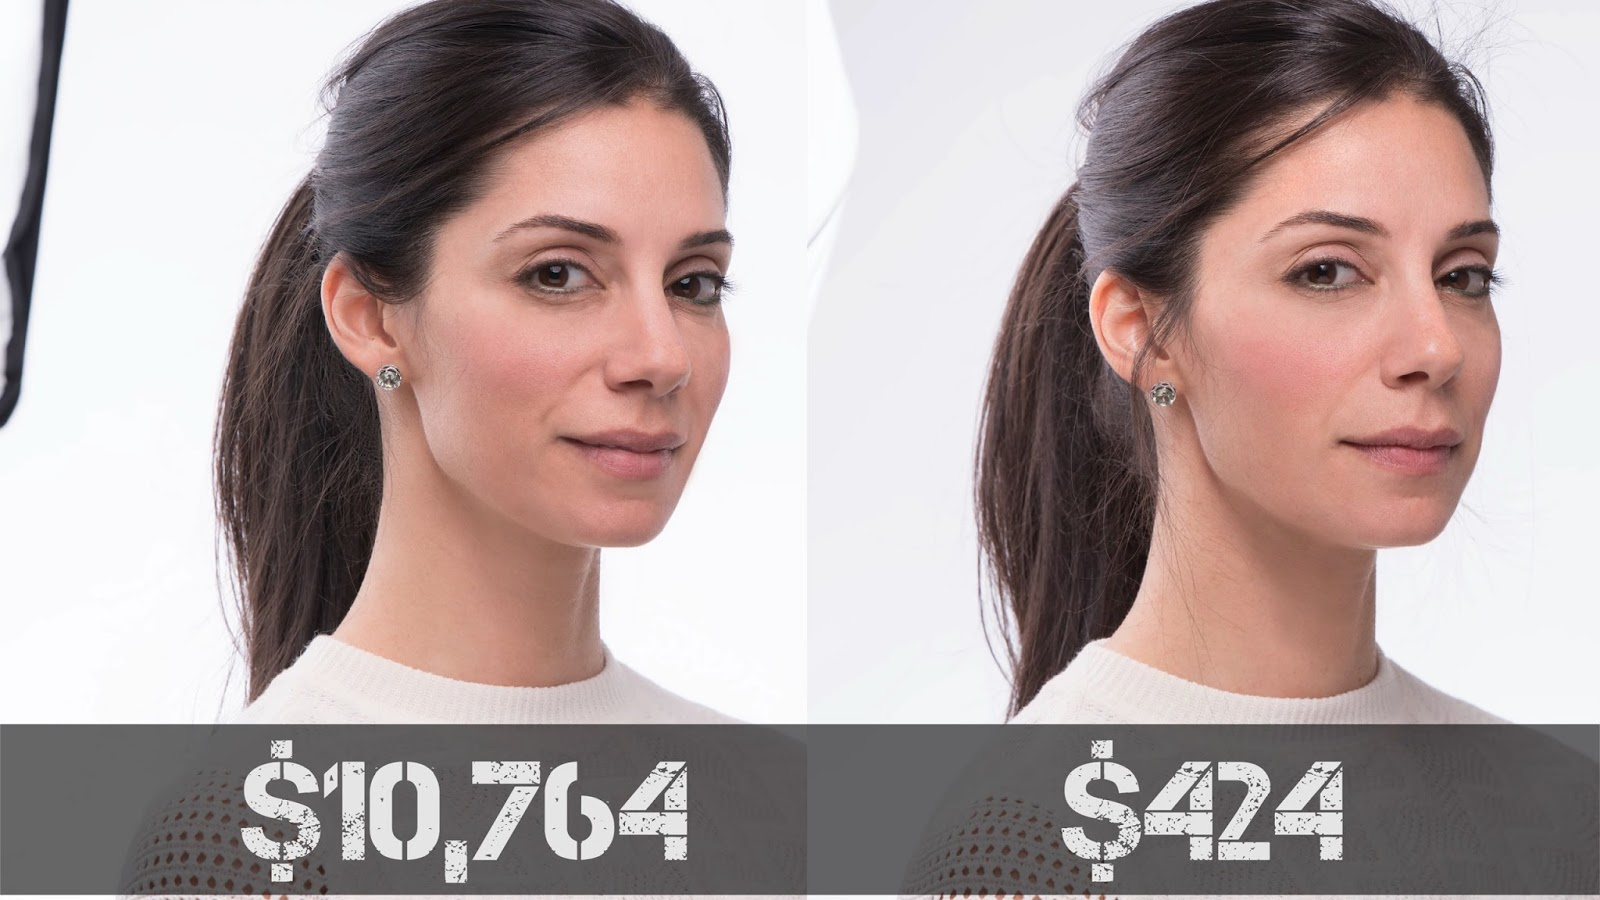 Beauty Portraits: Cheap Speedlights vs. Pro Lights